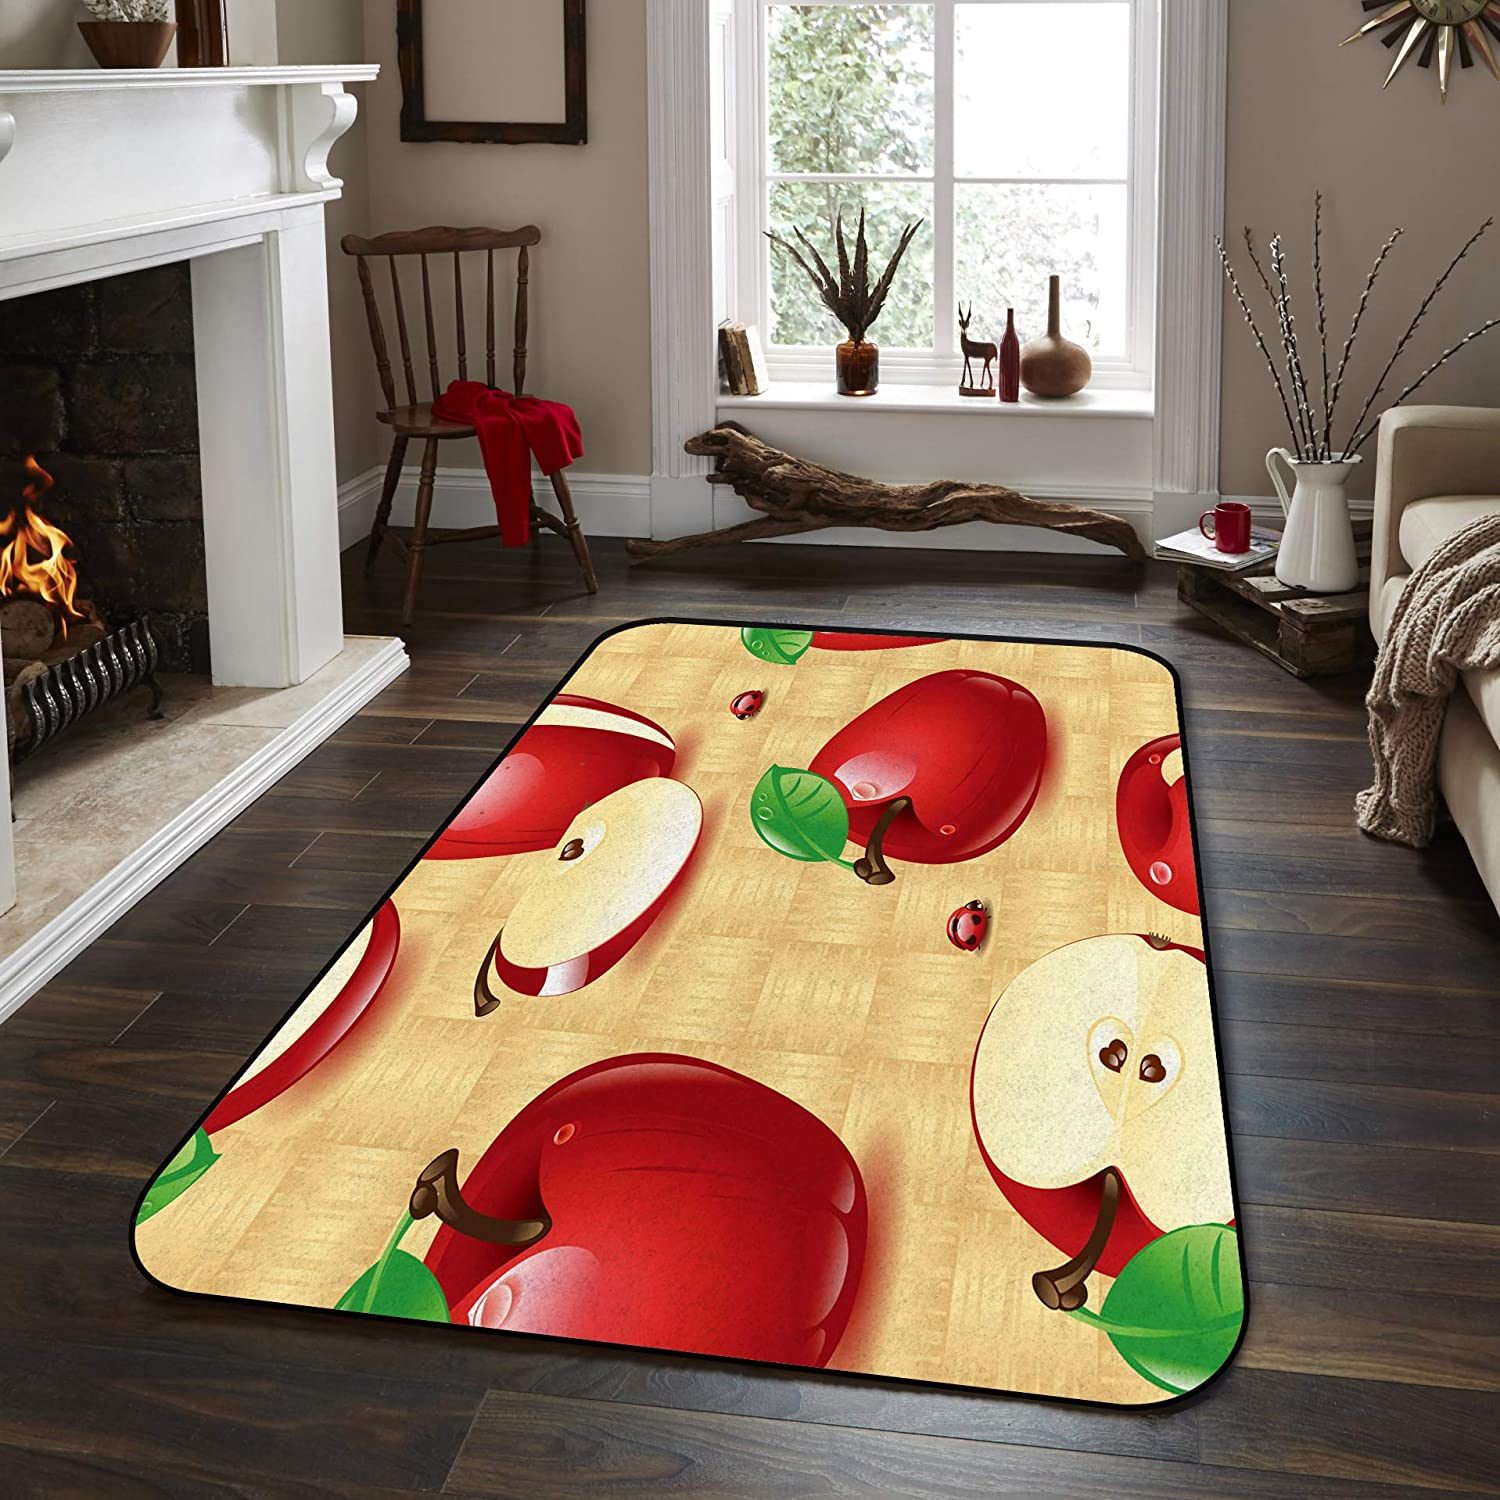 Fantasy Star Non-Slip Area Rugs Room Mat- Red Apples Home Decor Floor Carpet for High Traffic Areas Modern Rug Kitchen Mats Living Room Pads, 4' x 6'